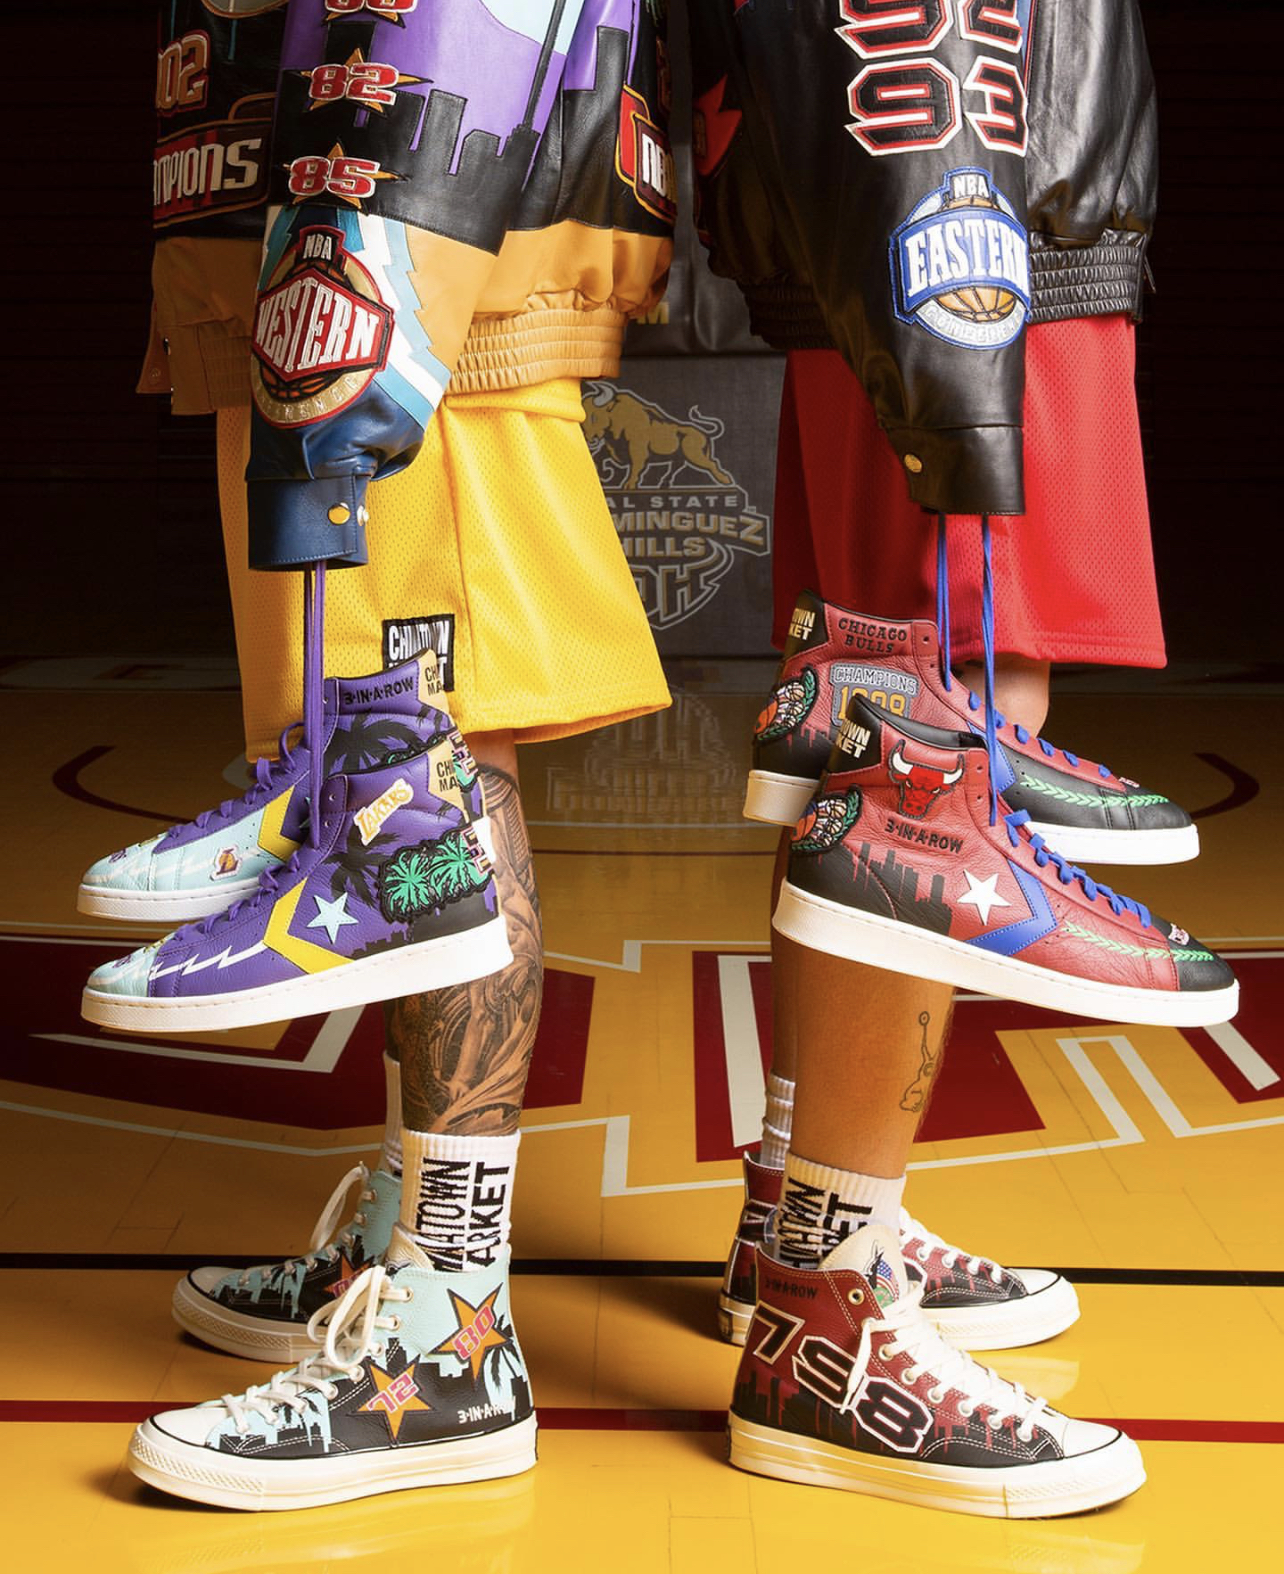 Converse reimagines Kobe and MJ's iconic title jackets as sneakers